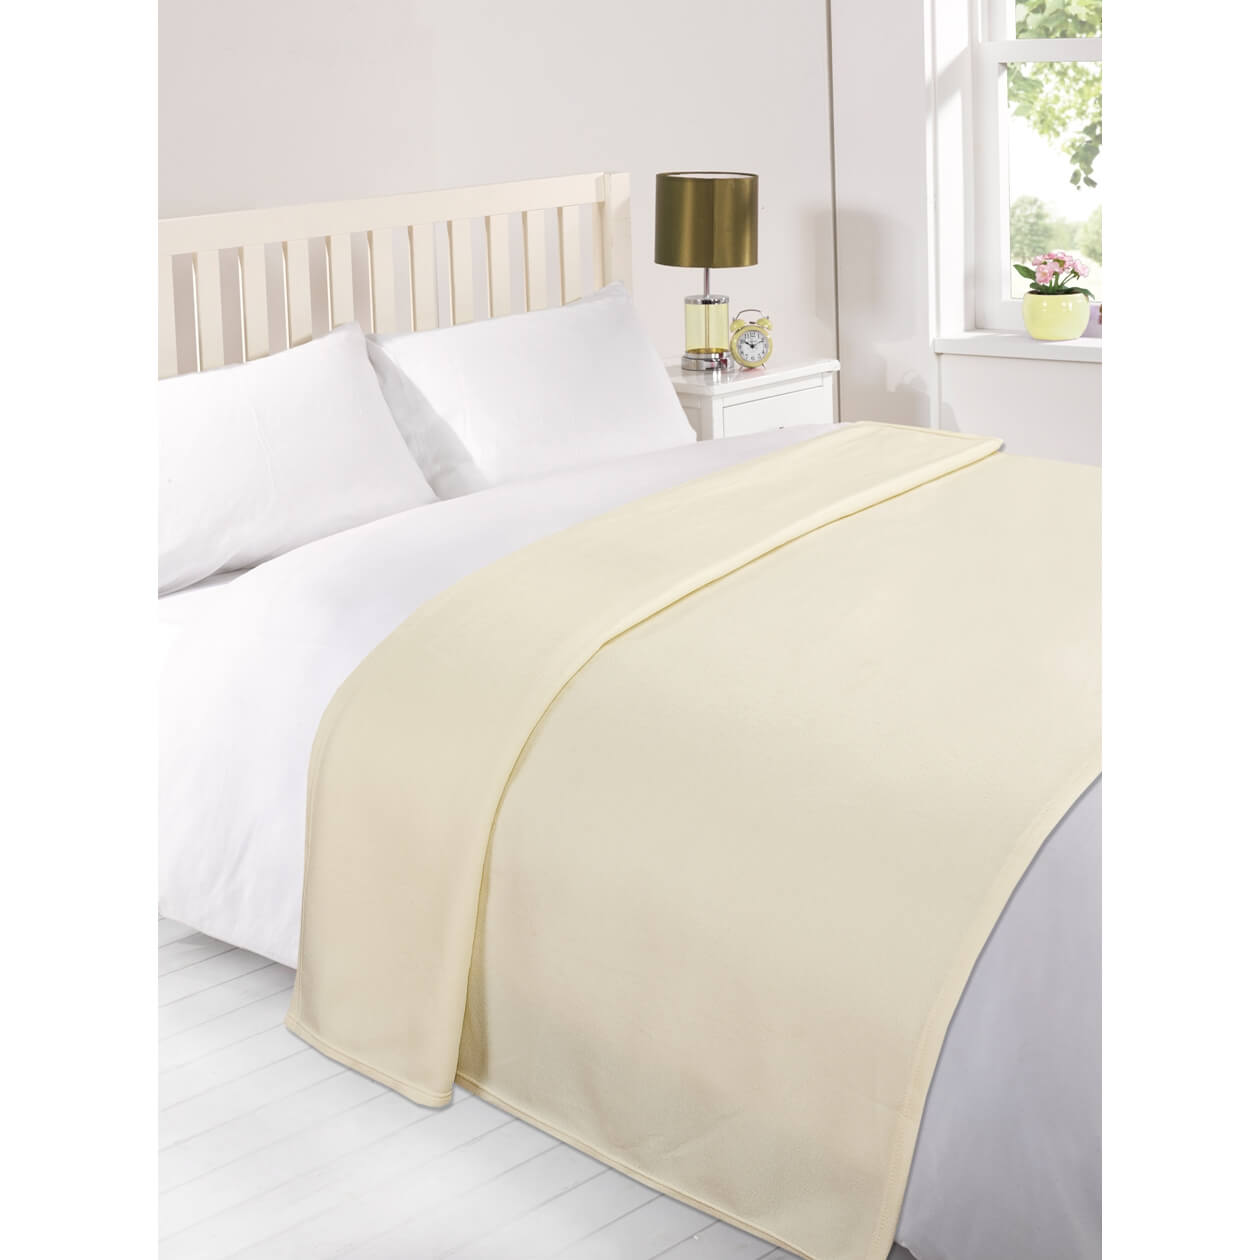 Dreamscene Soft Fleece Throw (120 x 150cm) - Cream